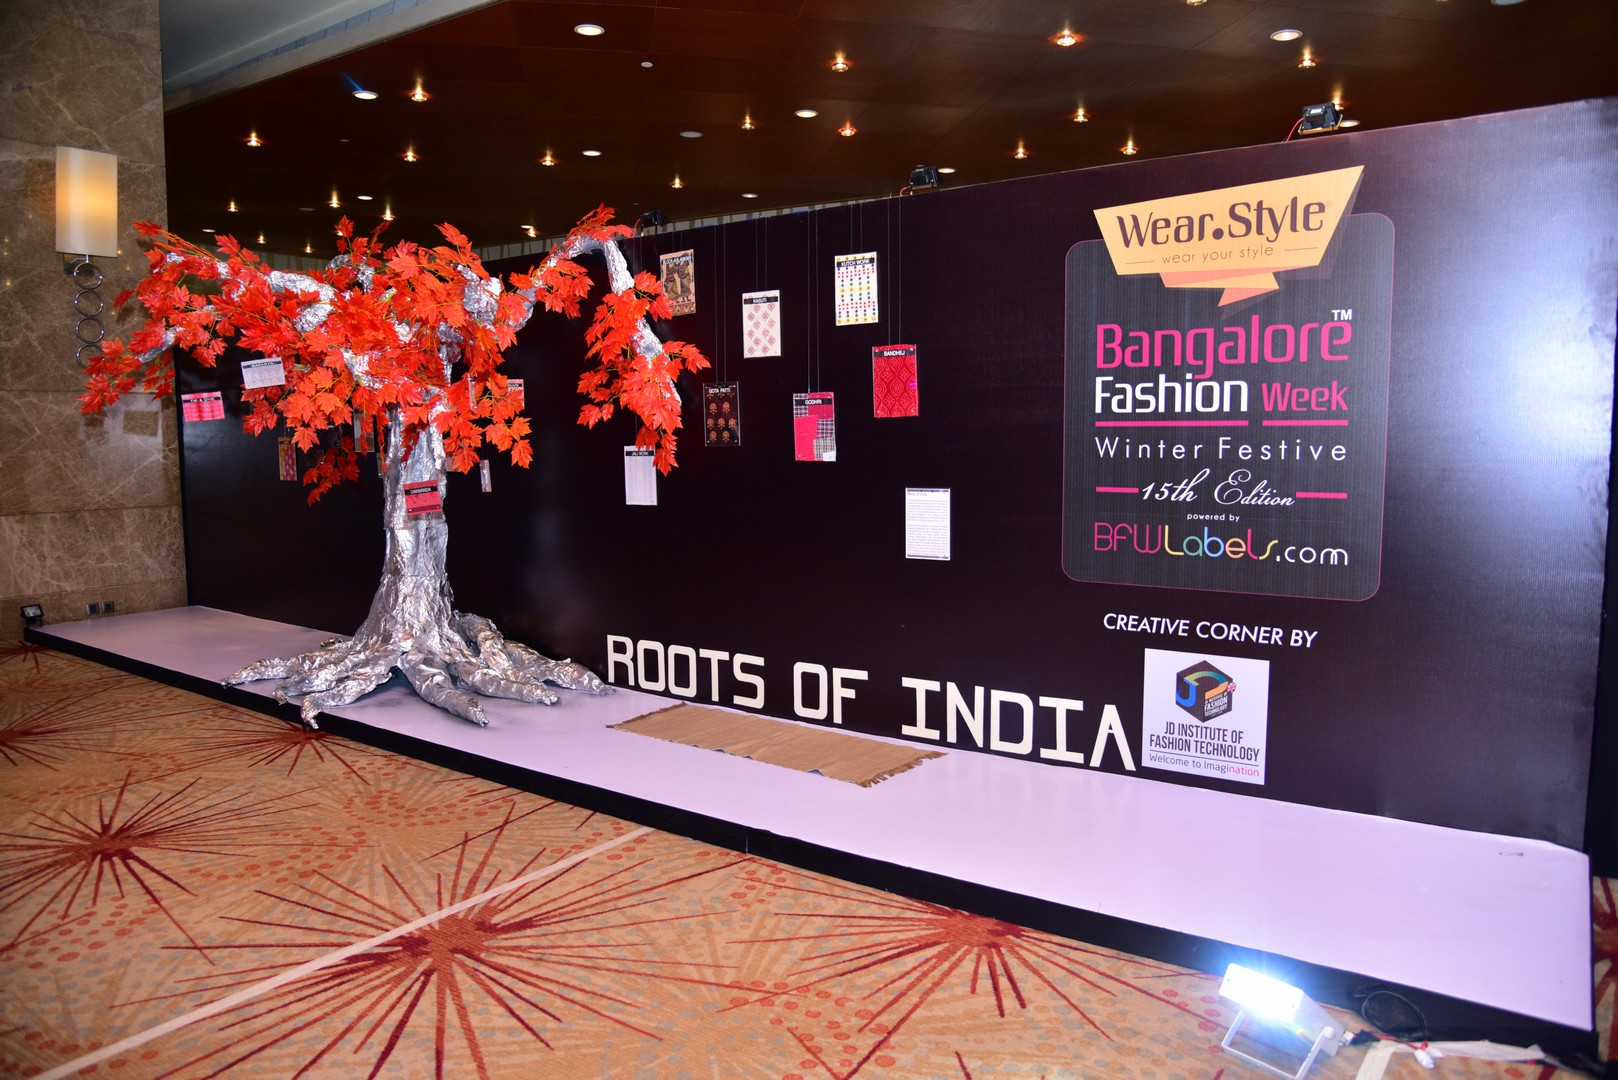 roots of india - DSC 7870 - Roots of India – Bangalore Fashion Week 2016